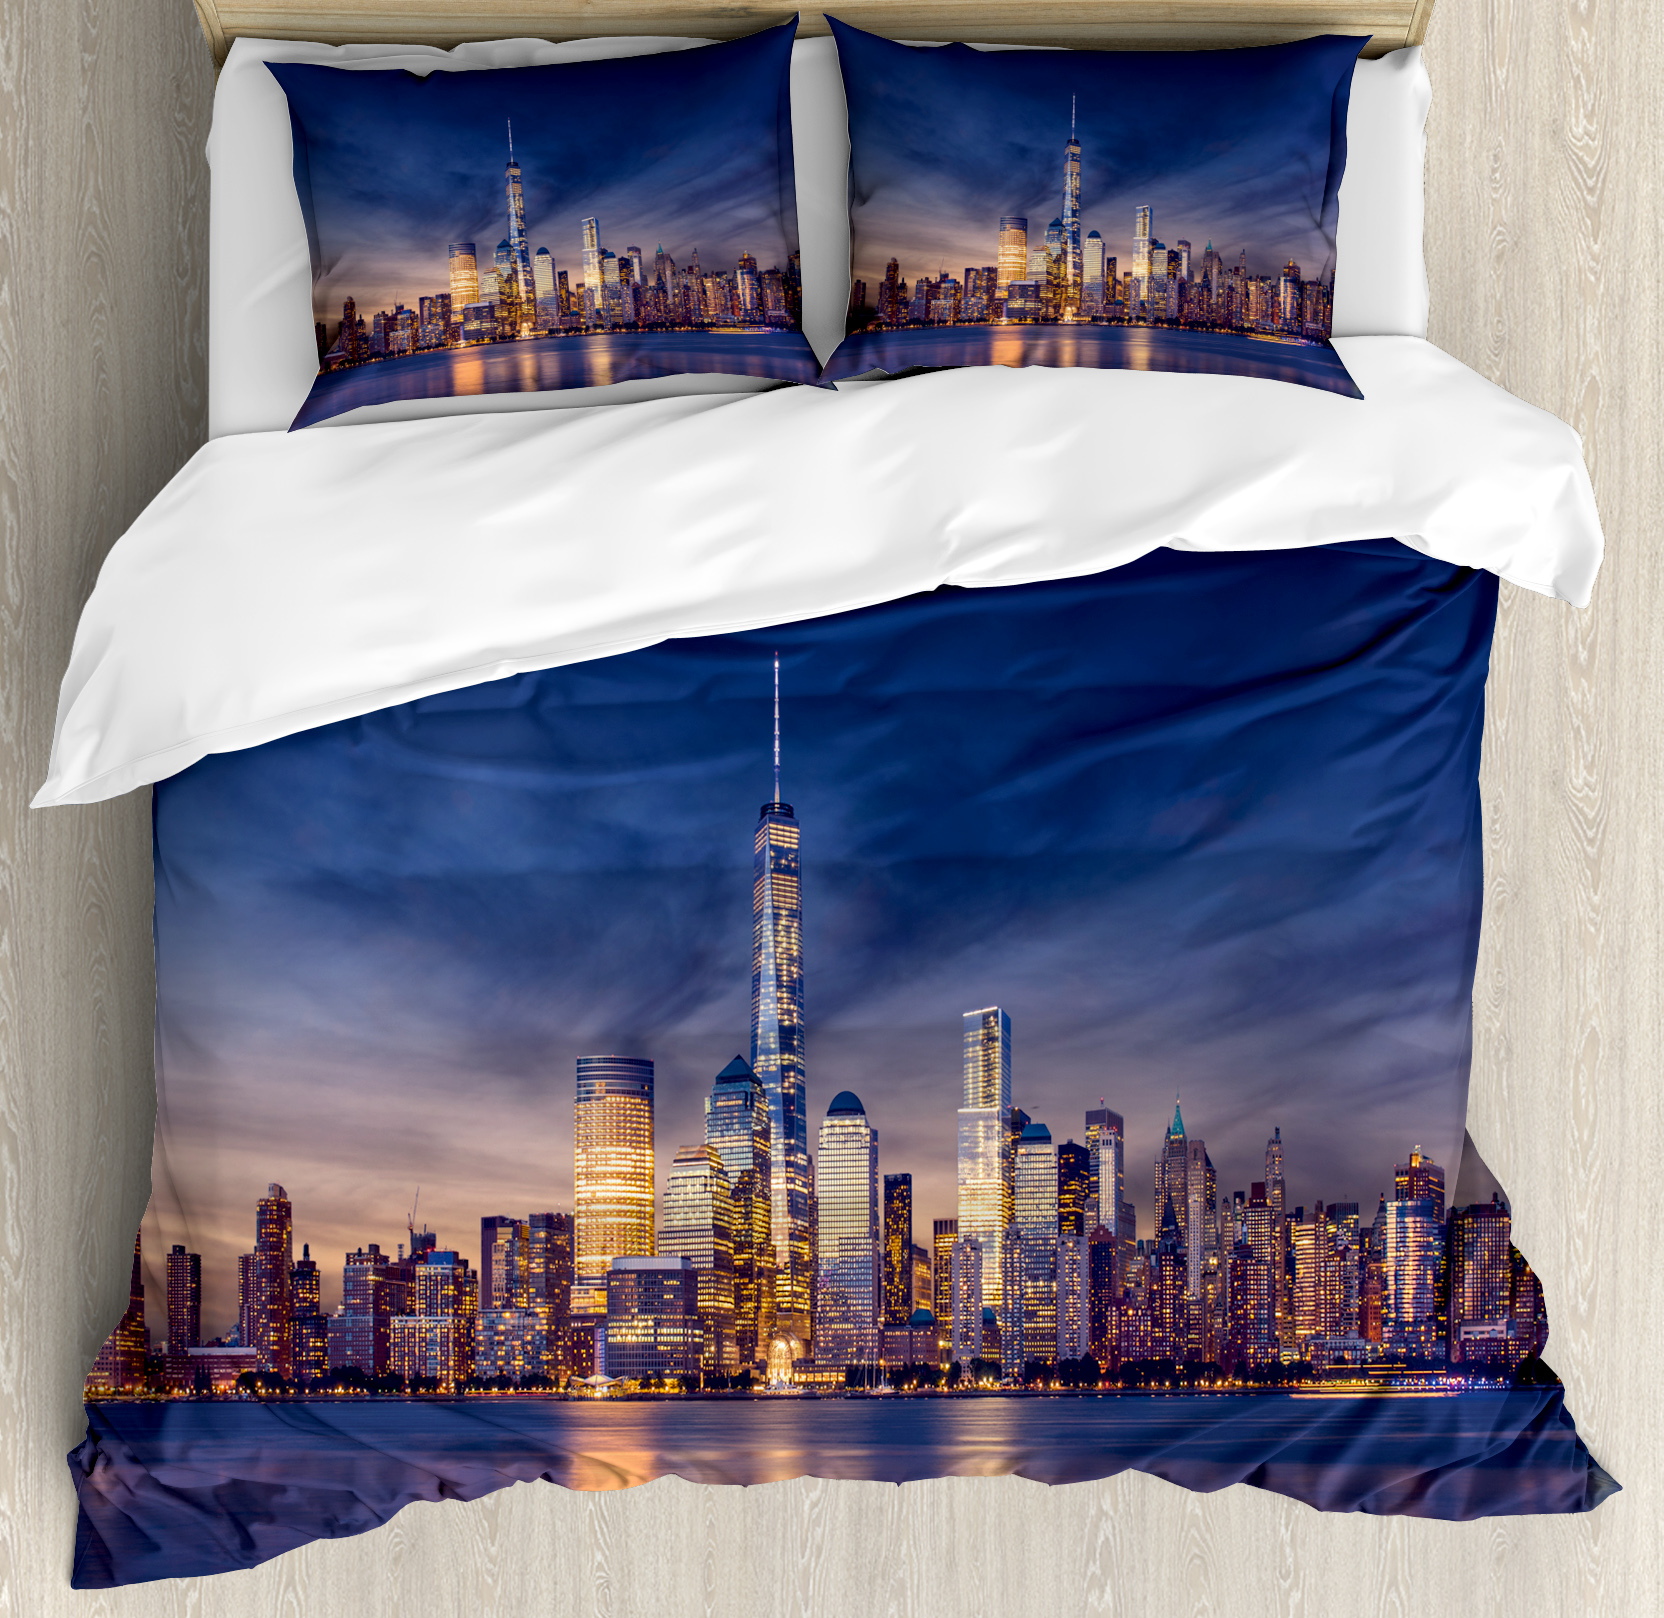 City King Size Duvet Cover Set, New York Skyline Manhattan After Sunset Metropolis Downtown Urban Panorama USA, Decorative 3 Piece Bedding Set with 2 Pillow Shams, Navy Blue Peach, by Ambesonne